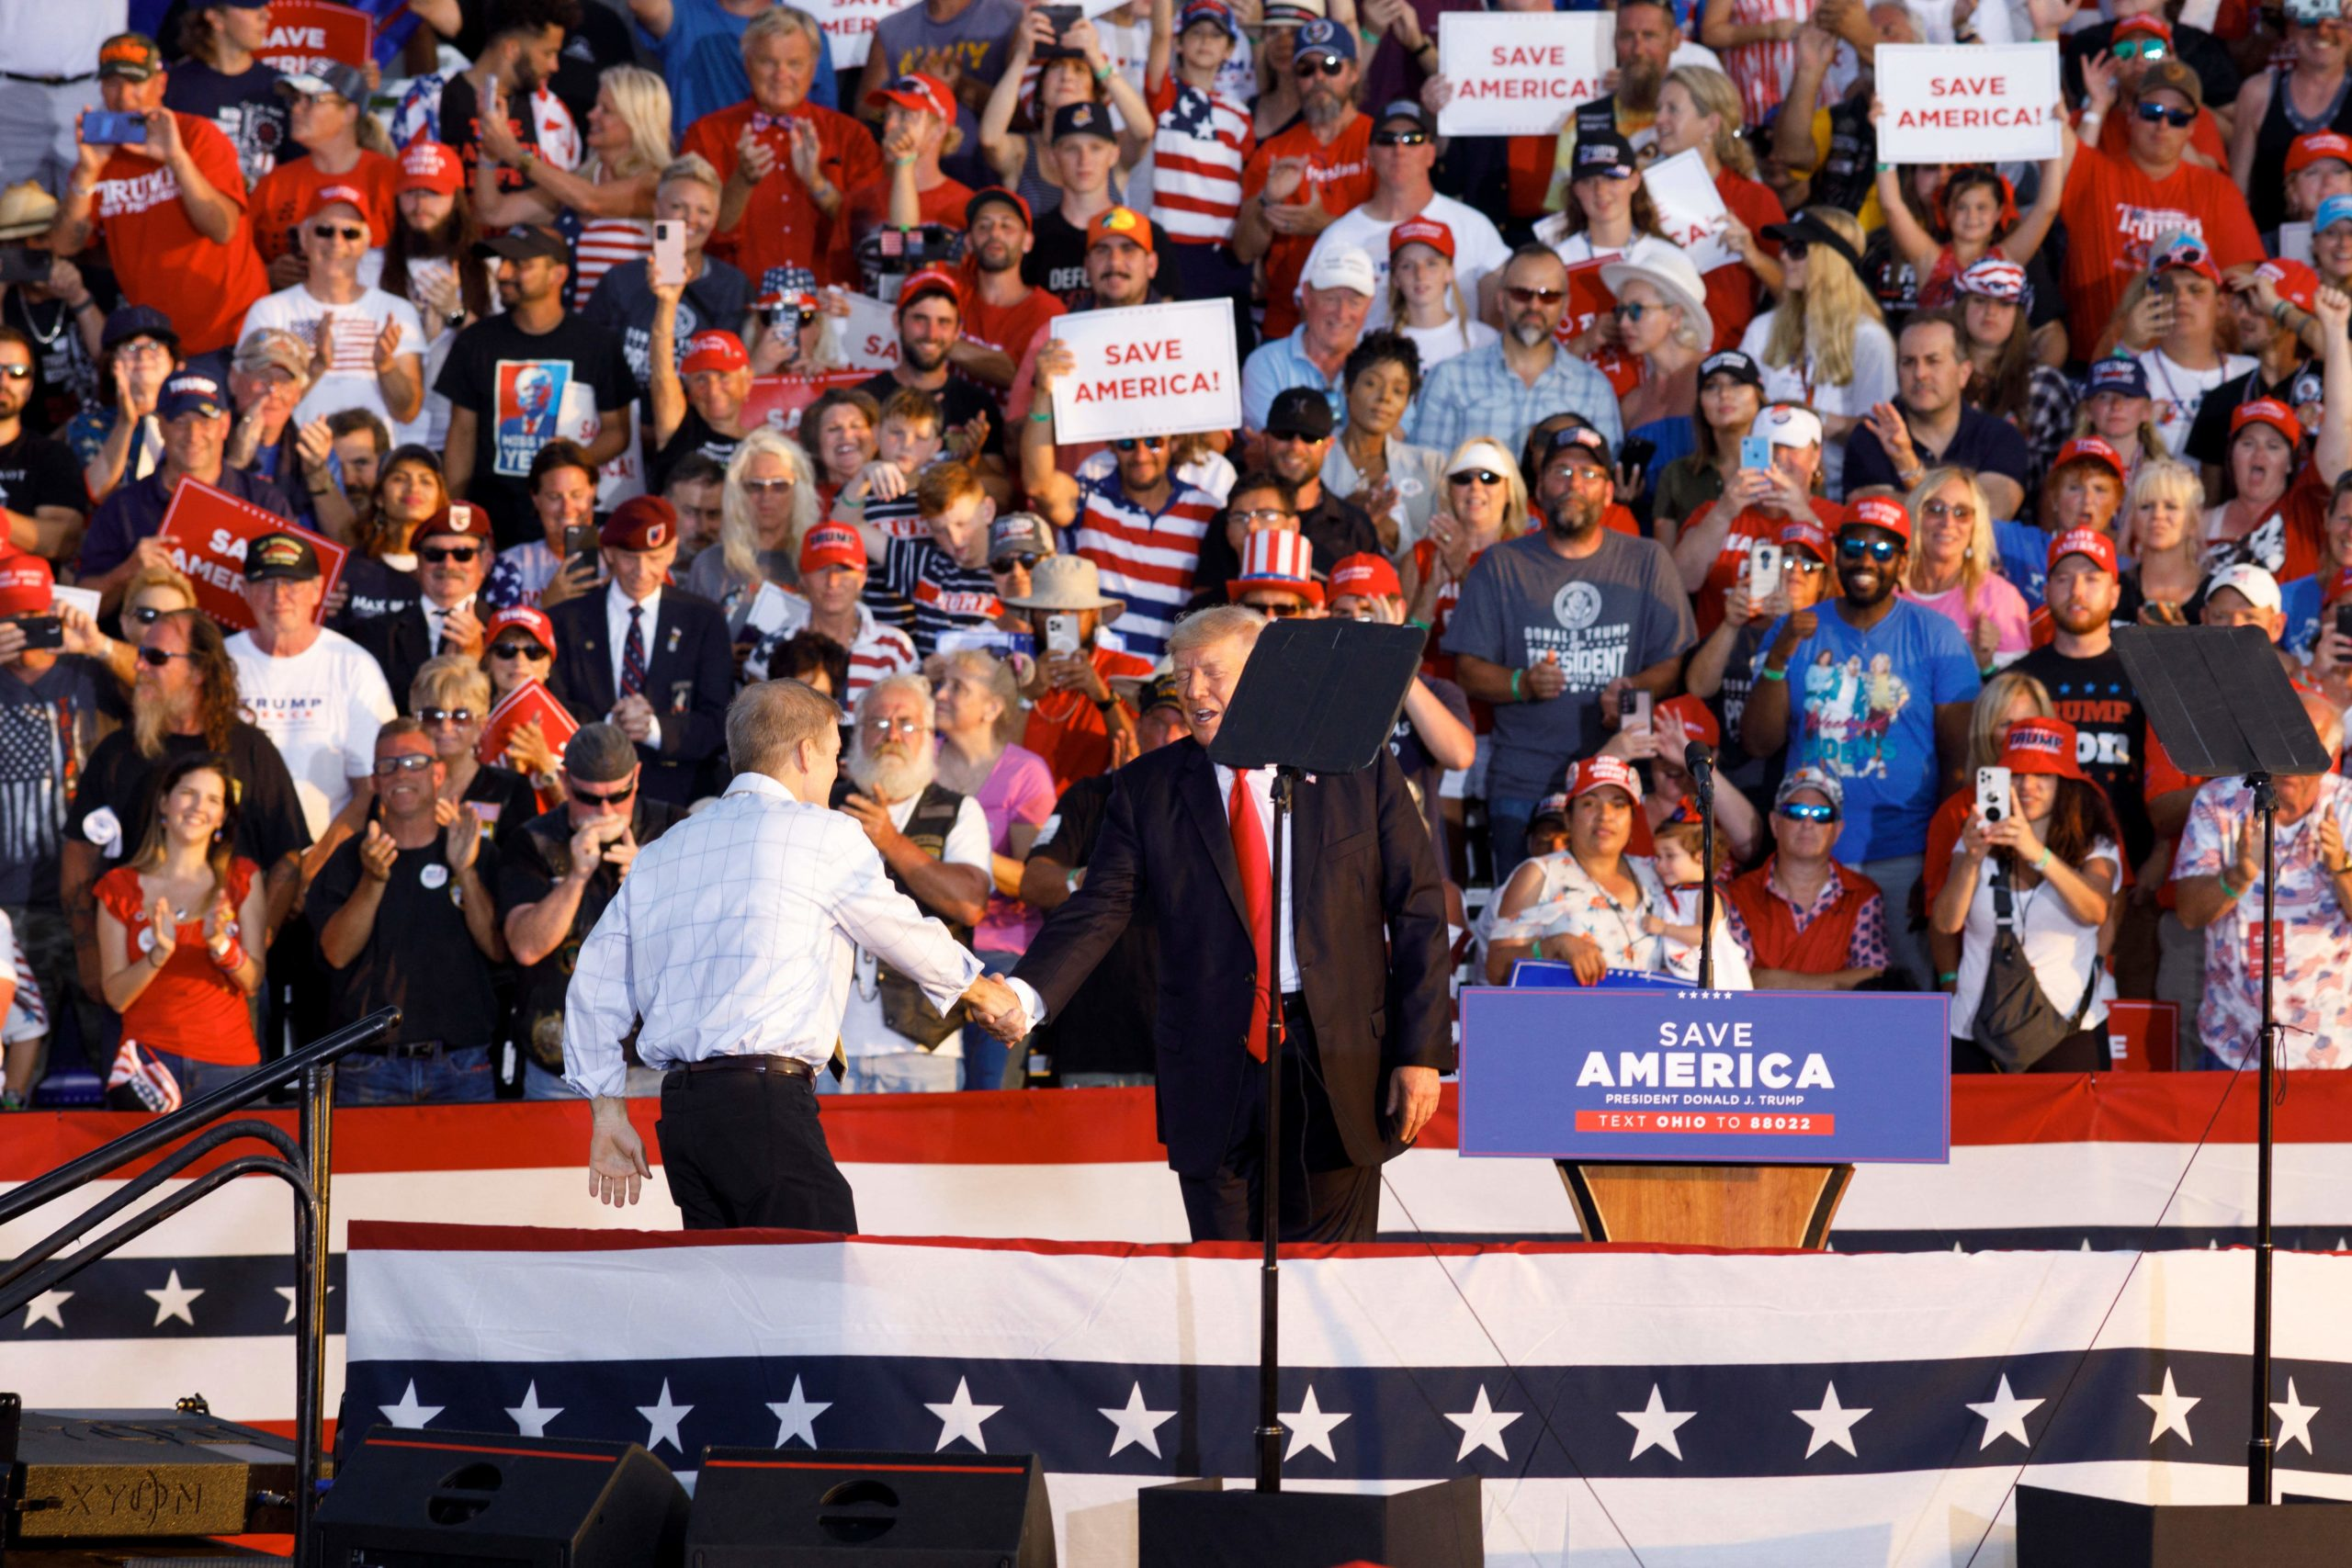 Former US President Donald Trump shakes hands with Jim Jordan, during his rally in Ohio on June 26. (STEPHEN ZENNER/AFP via Getty Images)